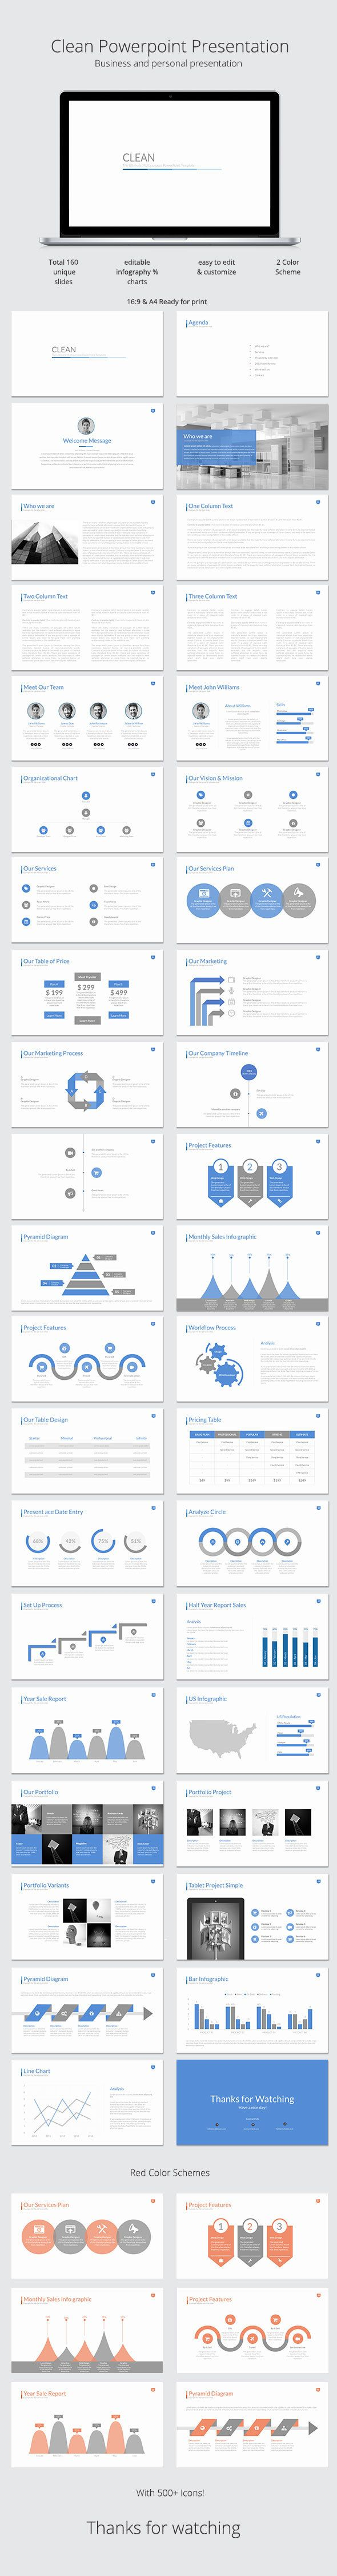 Coolmathgamesus  Scenic  Ideas About Powerpoint Presentations On Pinterest With Fetching Clean Powerpoint Template With Lovely The French Revolution Powerpoint Also Powerpoint Trivia Template In Addition Worship Powerpoint Templates And Bullet Points Powerpoint As Well As Dark Powerpoint Templates Additionally Sample Powerpoint Slides From Pinterestcom With Coolmathgamesus  Fetching  Ideas About Powerpoint Presentations On Pinterest With Lovely Clean Powerpoint Template And Scenic The French Revolution Powerpoint Also Powerpoint Trivia Template In Addition Worship Powerpoint Templates From Pinterestcom